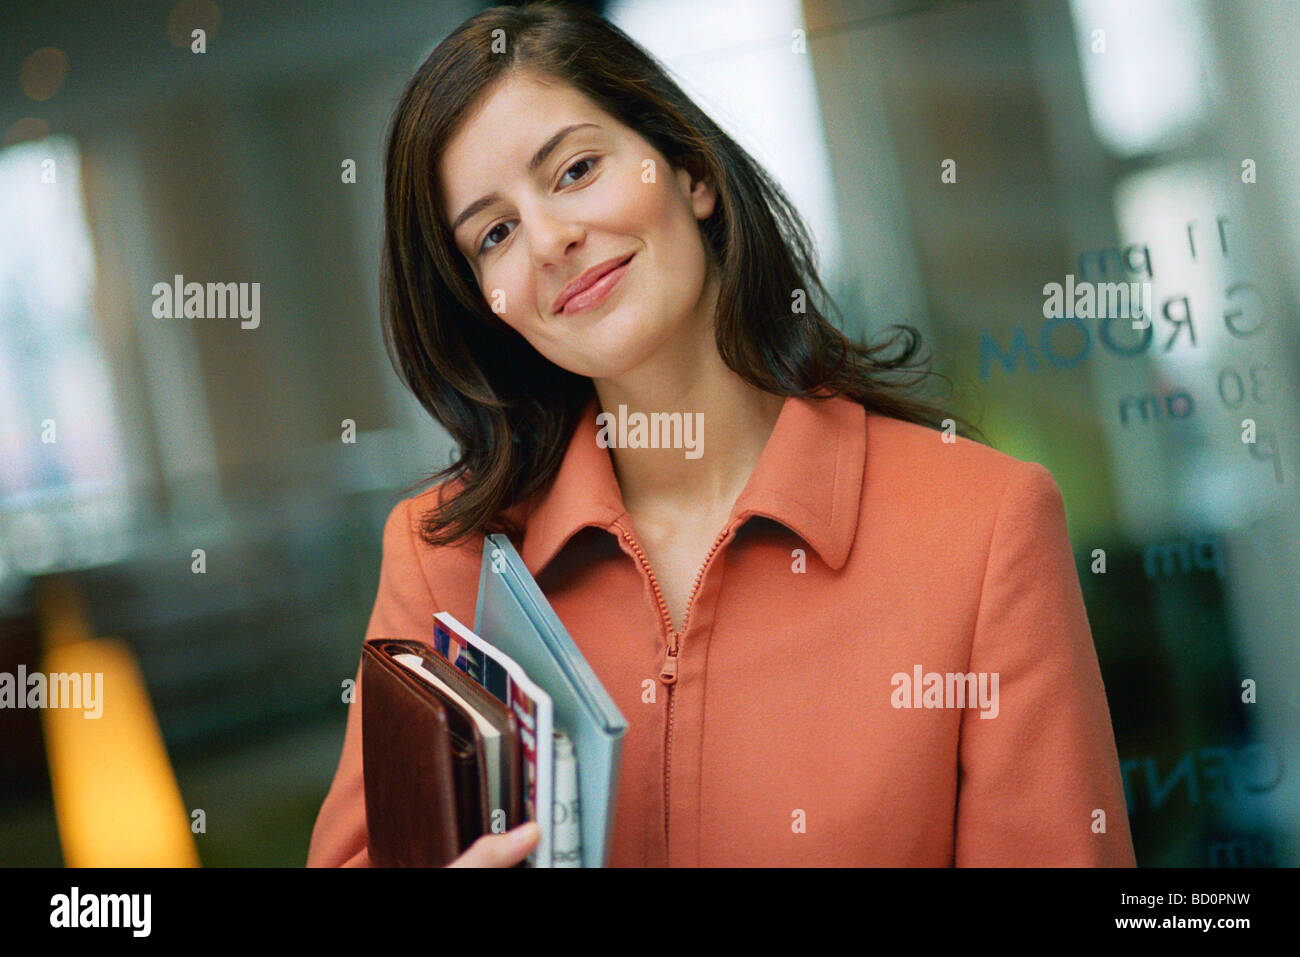 Businesswoman smiling at camera, portrait - Stock Image